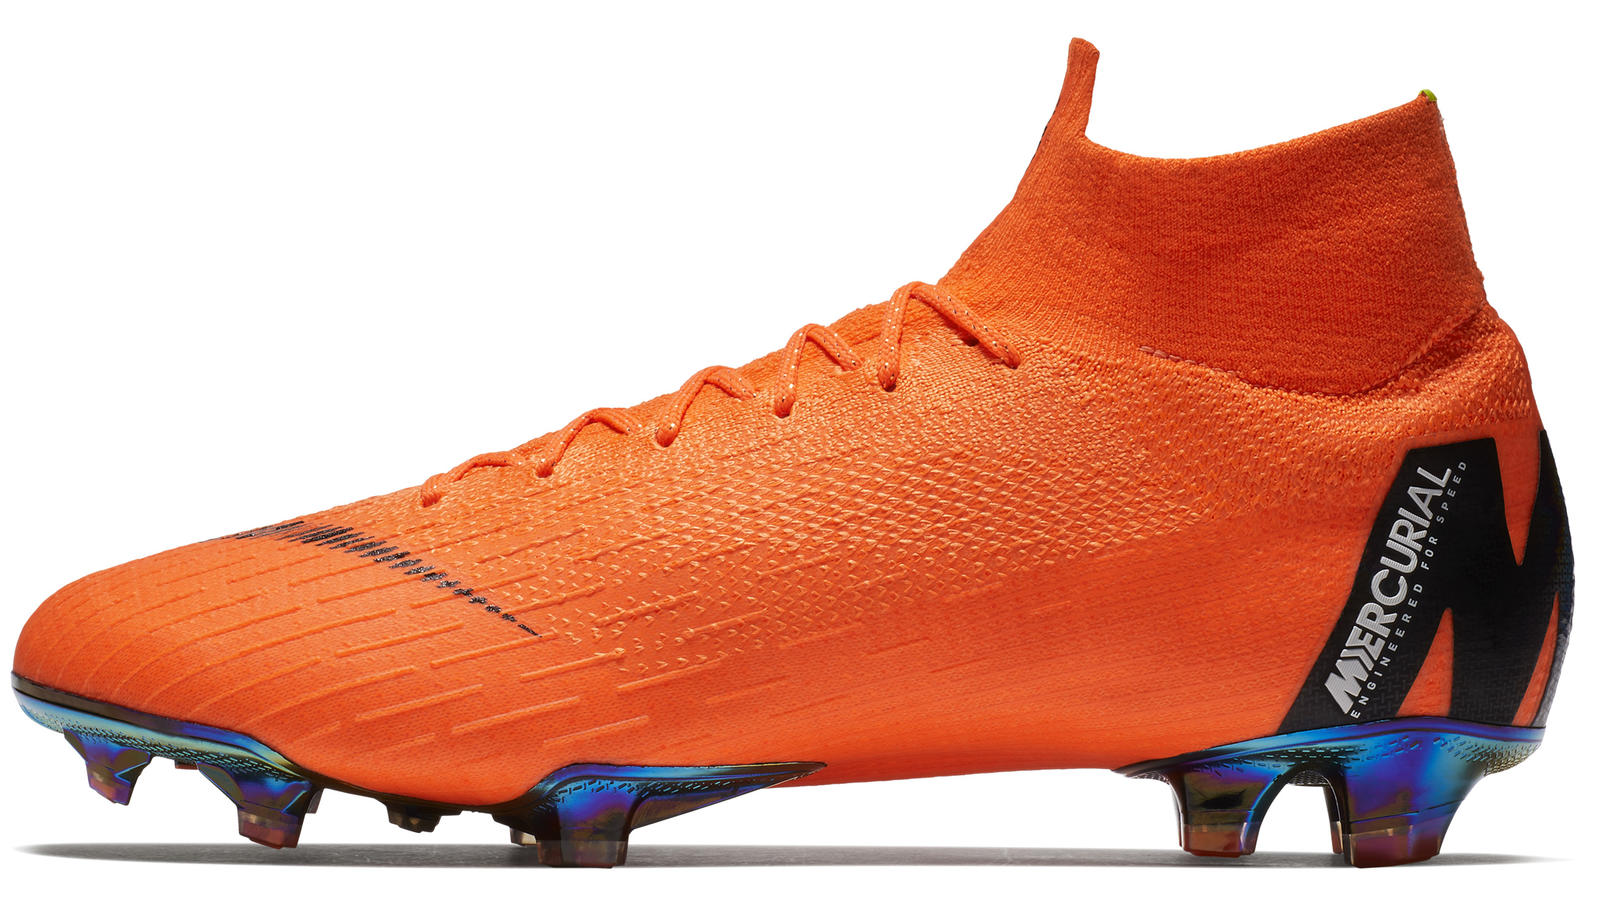 Nike Football Launches the 2018 Mercurial Superfly and Vapor 360 ... 72fb8543c6830